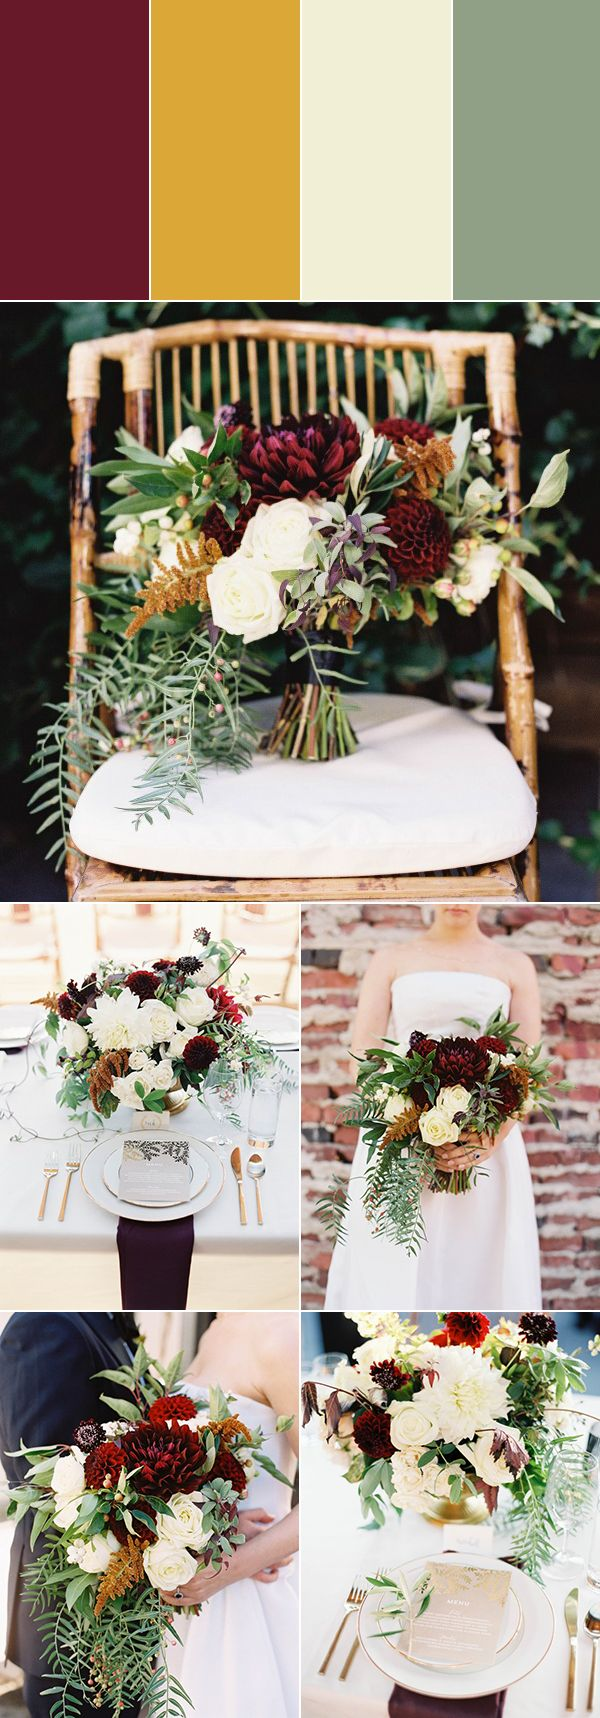 burgundy x gold x sage x ivory  wedding color palette photos by O'Malley Photographers